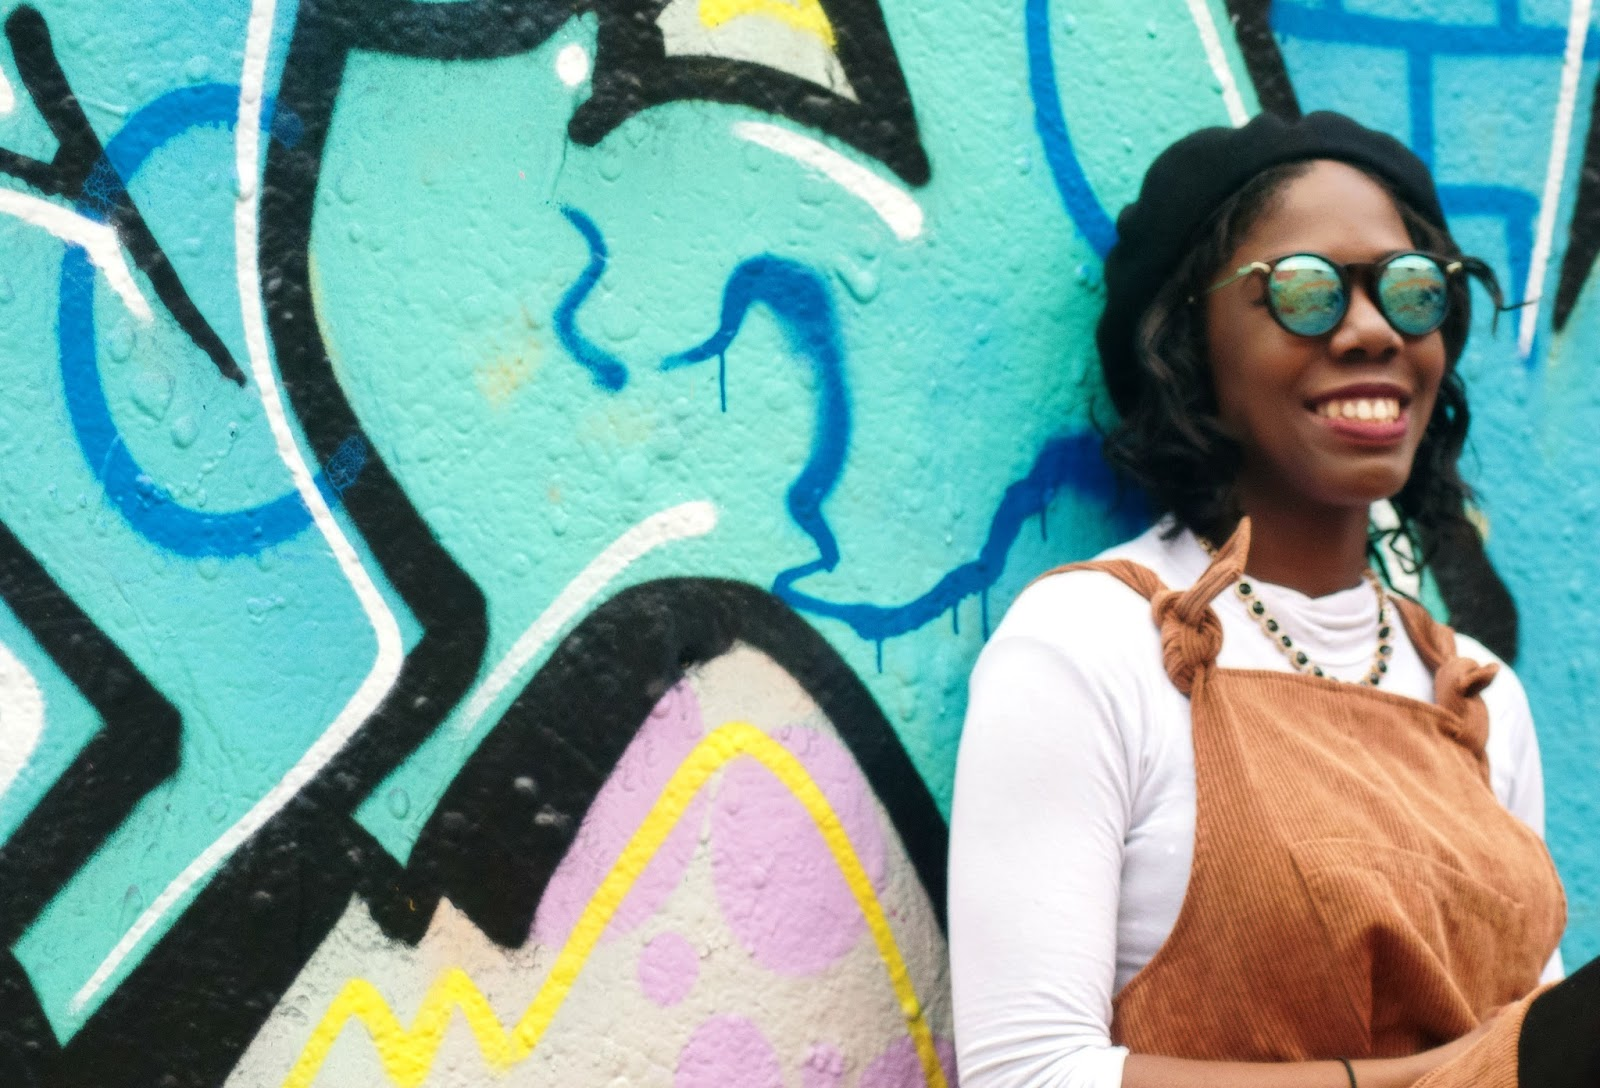 Boohoo pinafore knot dress, new look suede black ankle boots, asos round sunglasses and flash lens tort, uk fashion and lifestyle blogger, 100 Ways to 30, fashion bloggers, h&m short necklace gold, blogger comparison, achieving goals, self love